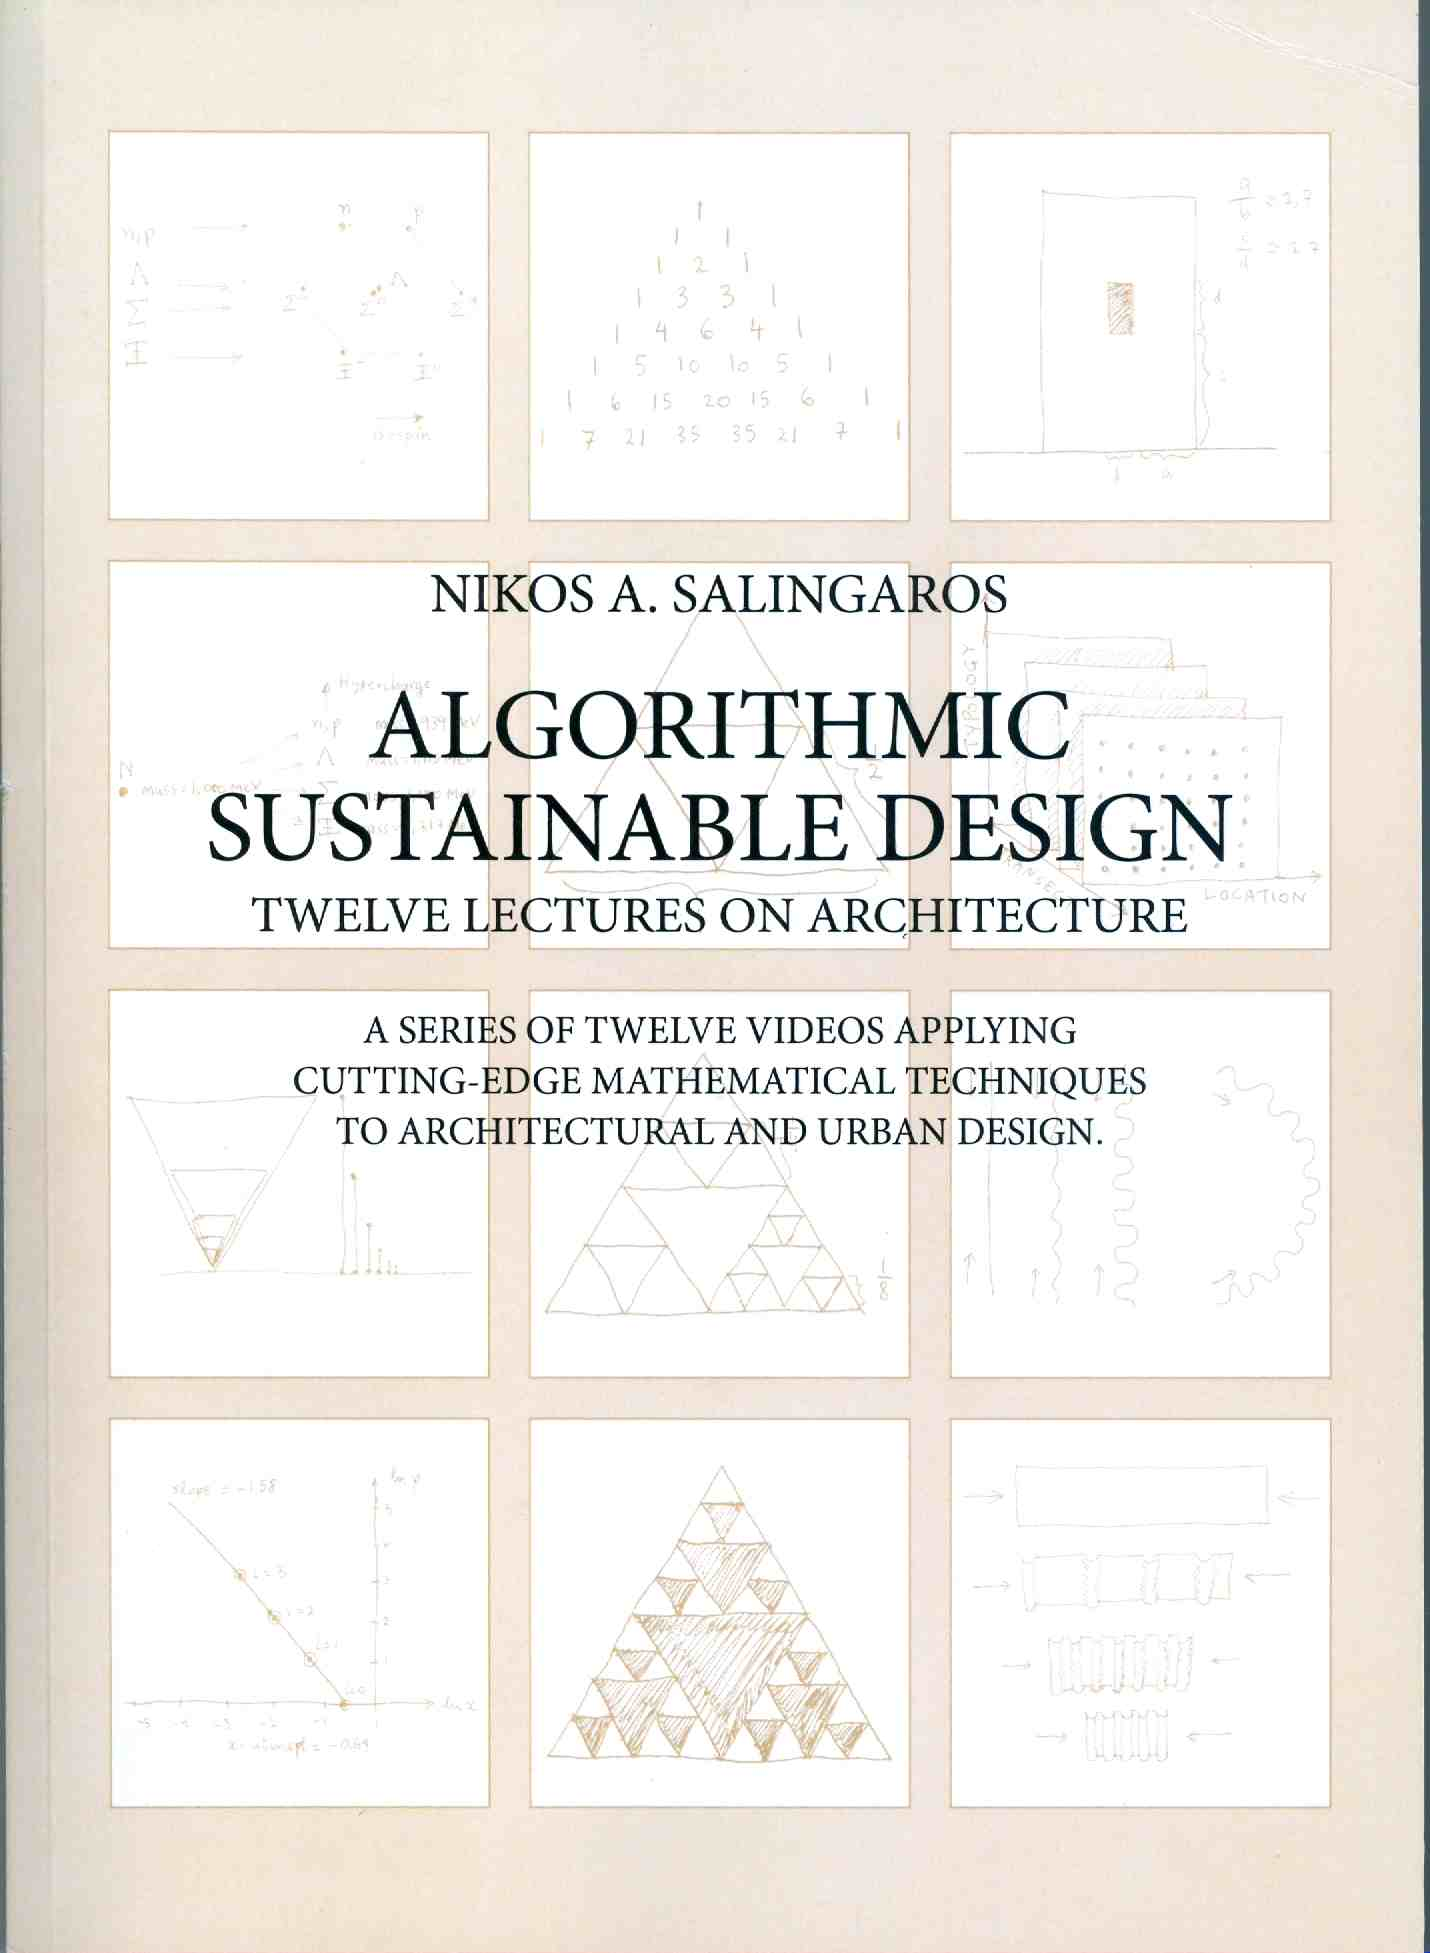 Nikos A Salingaros BOOKS ON ARCHITECTURE COMPLEXITY PATTERNS AND URBANISM